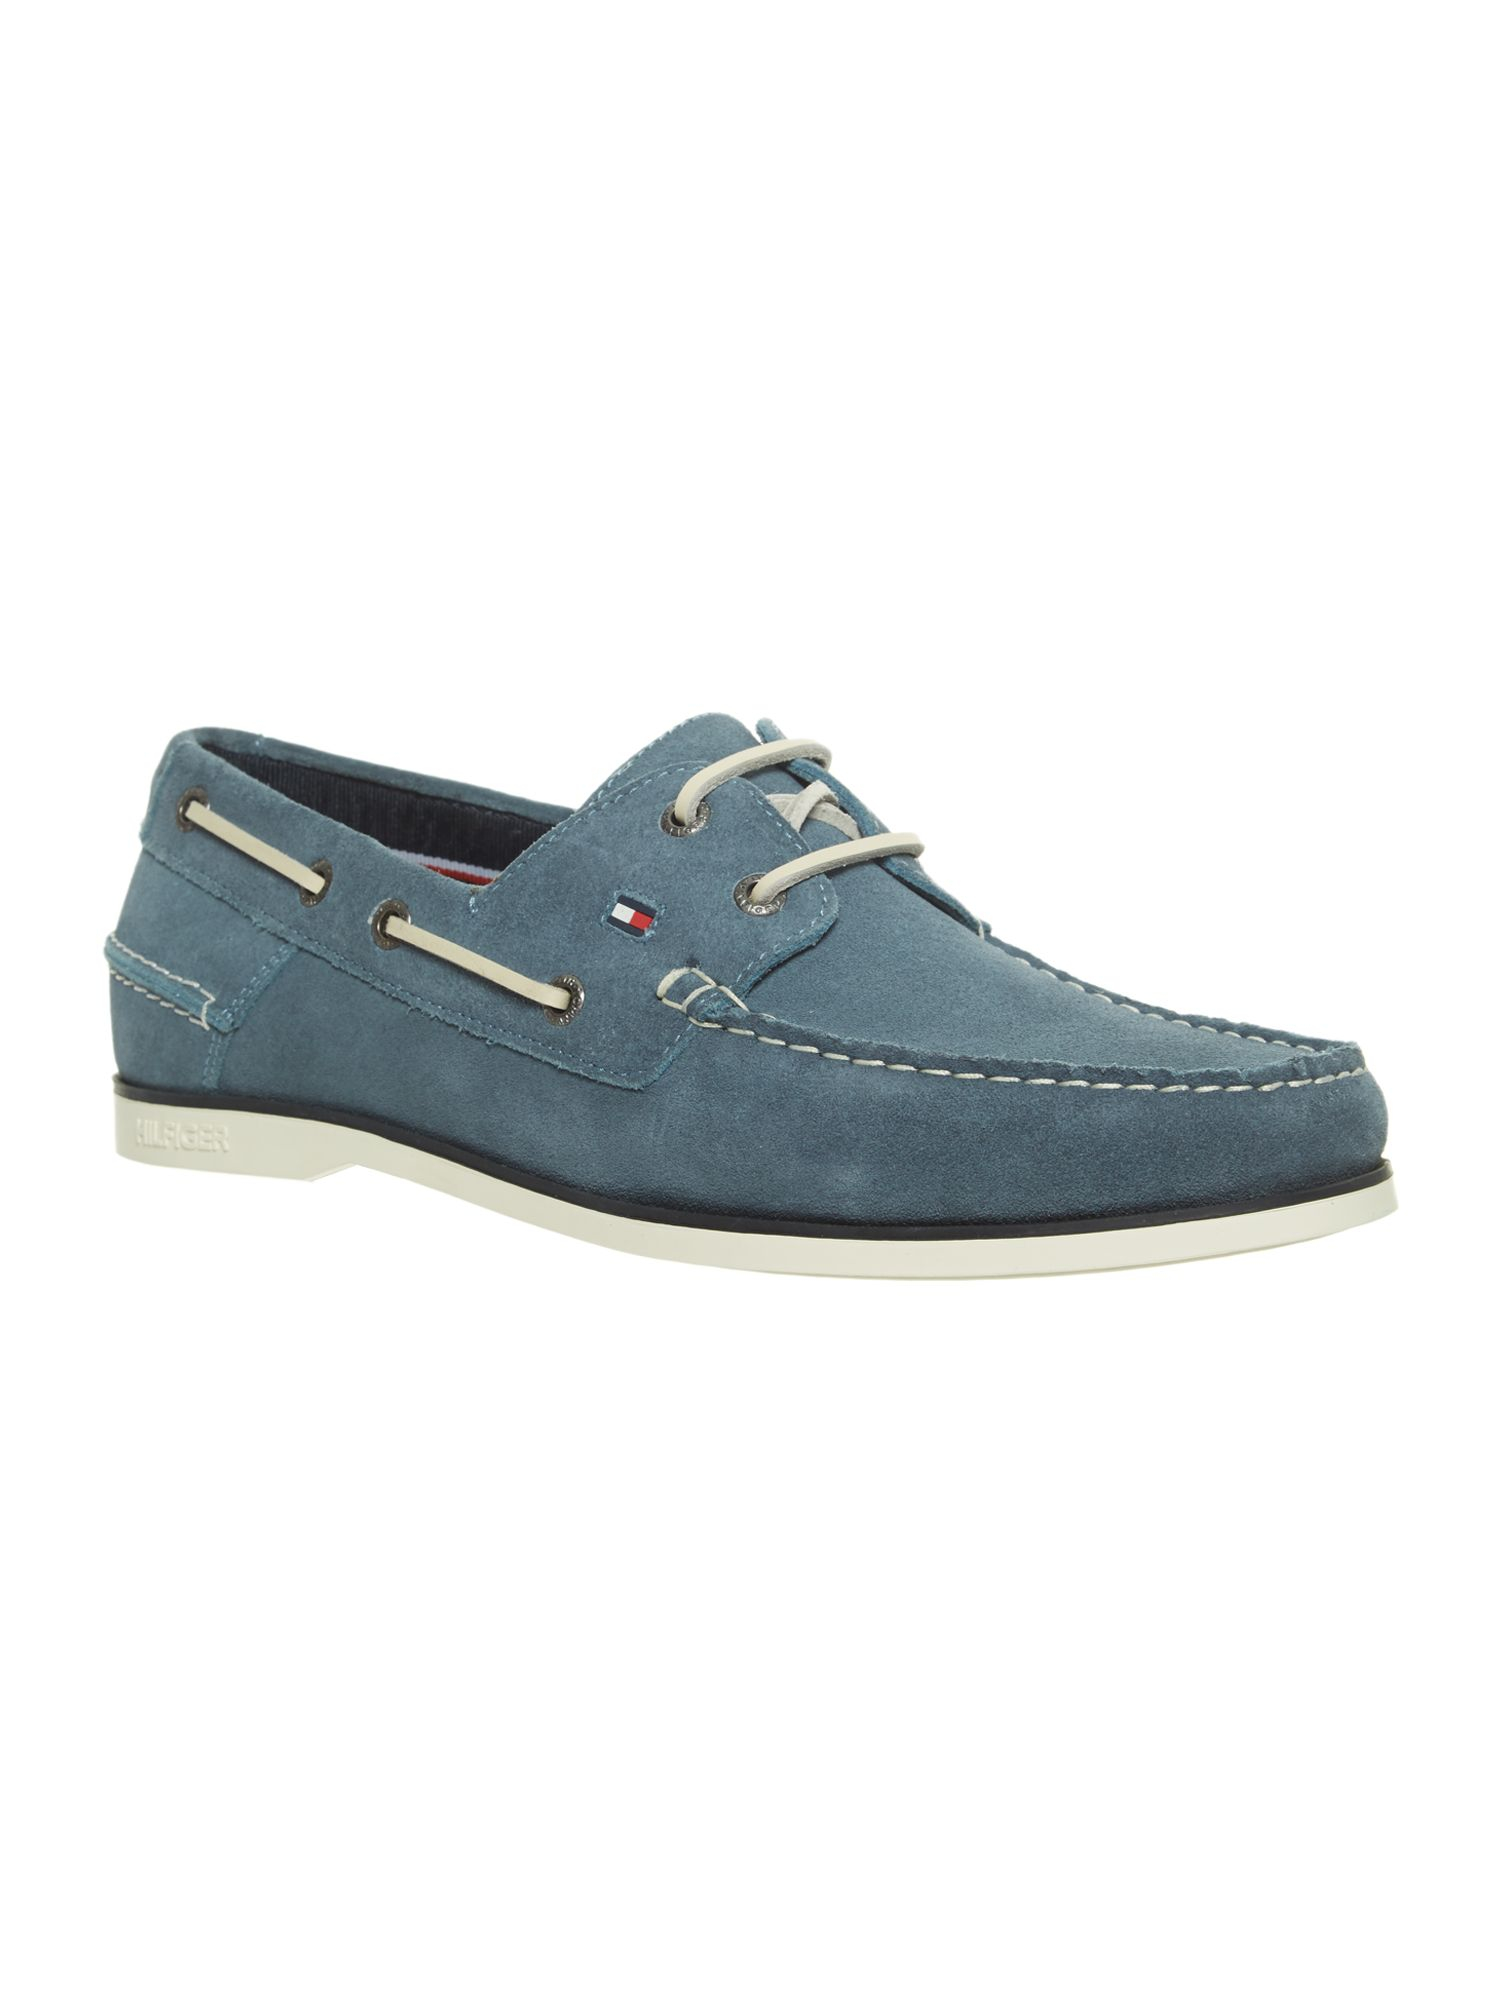 how to clean tommy hilfiger shoes leather